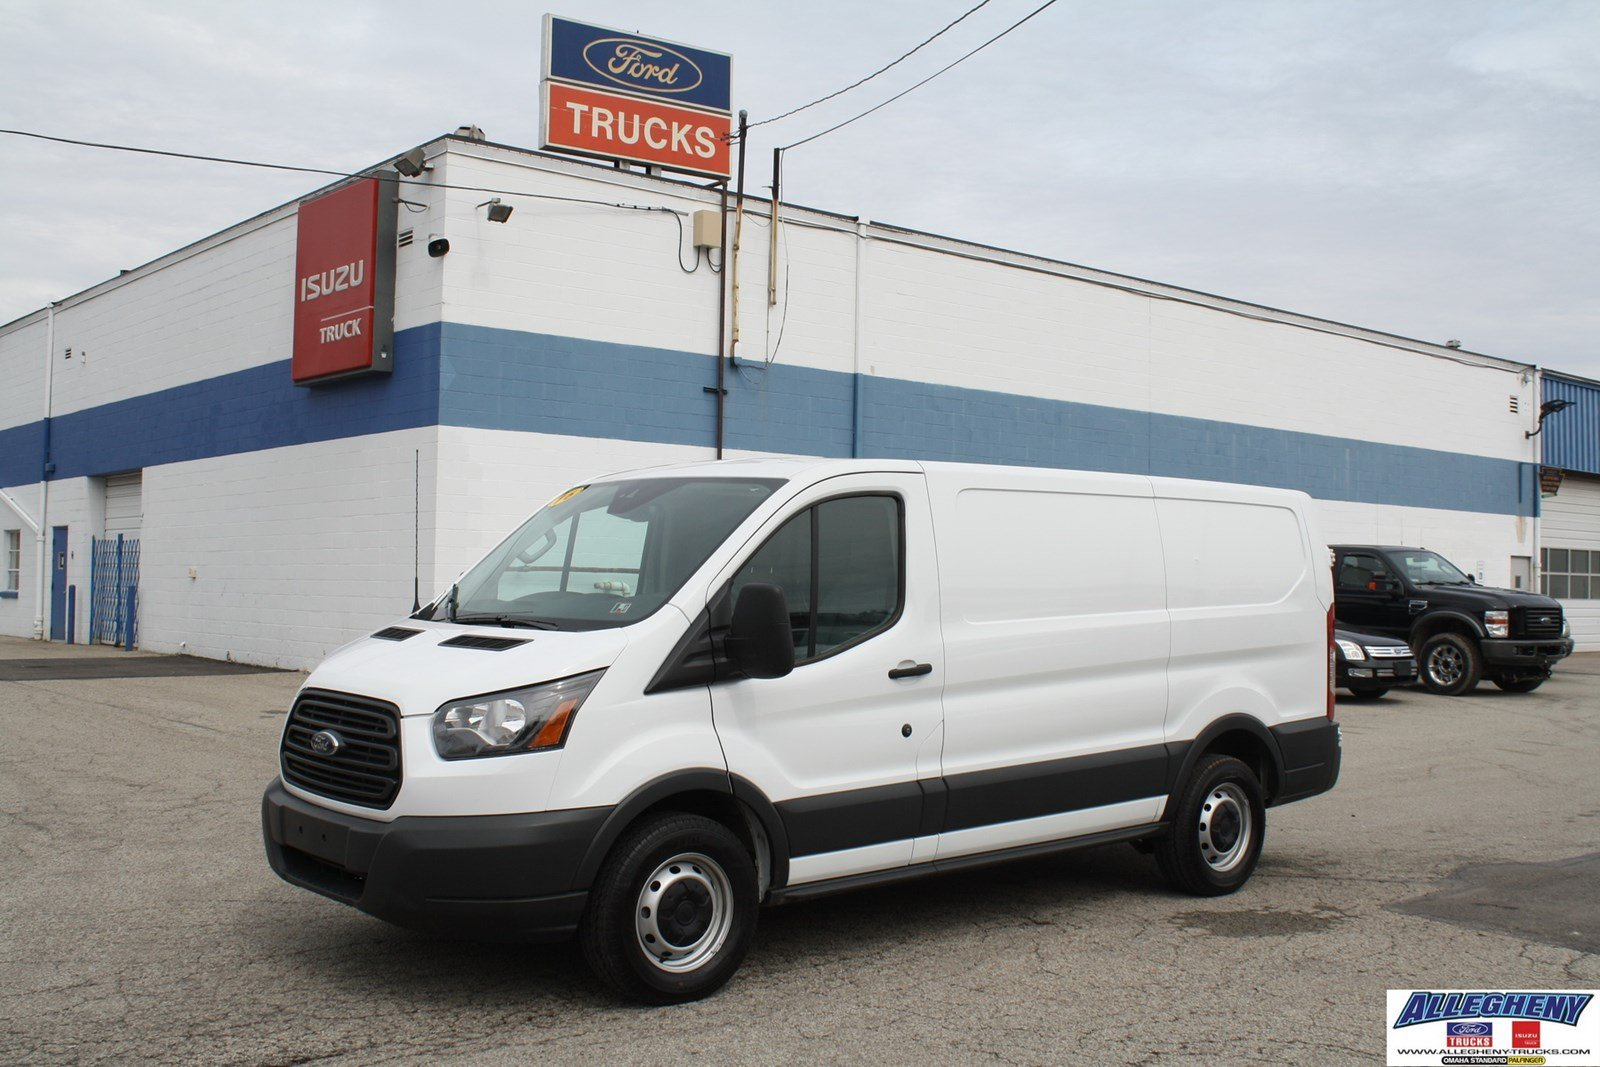 pre owned 2016 ford transit cargo van t150 full size cargo van in pittsburgh 3721 allegheny. Black Bedroom Furniture Sets. Home Design Ideas